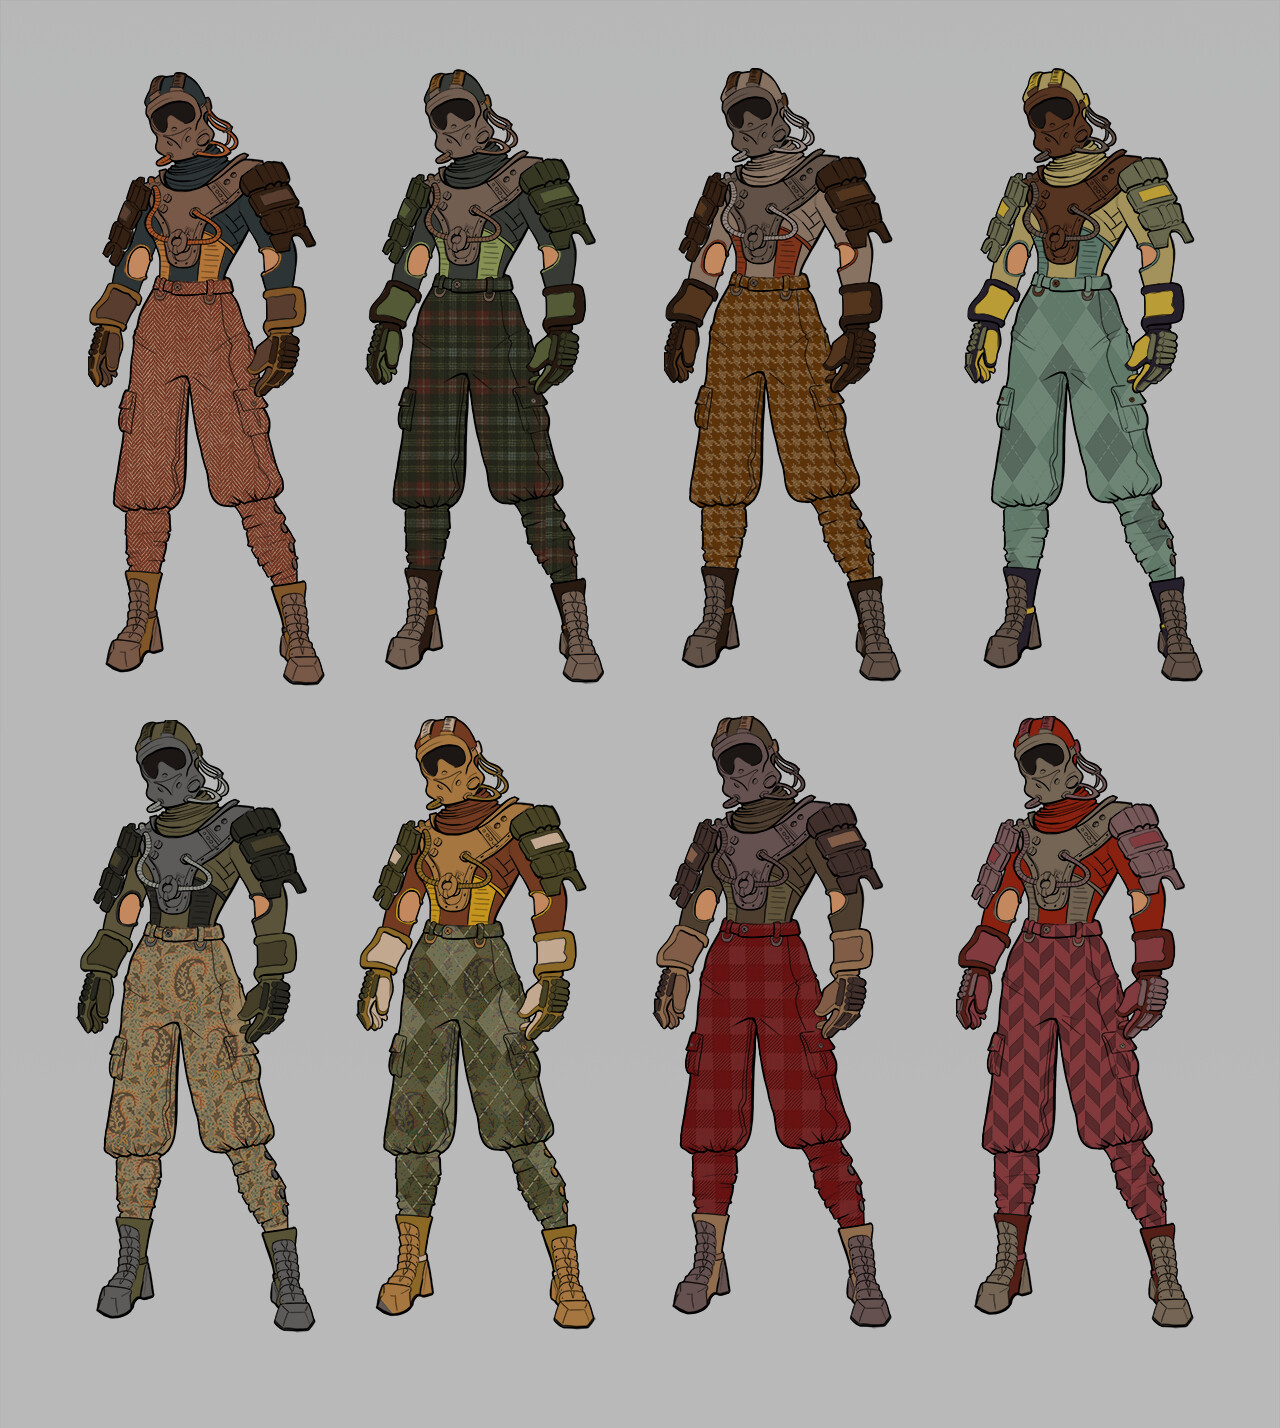 E mali ware ds4 color variations